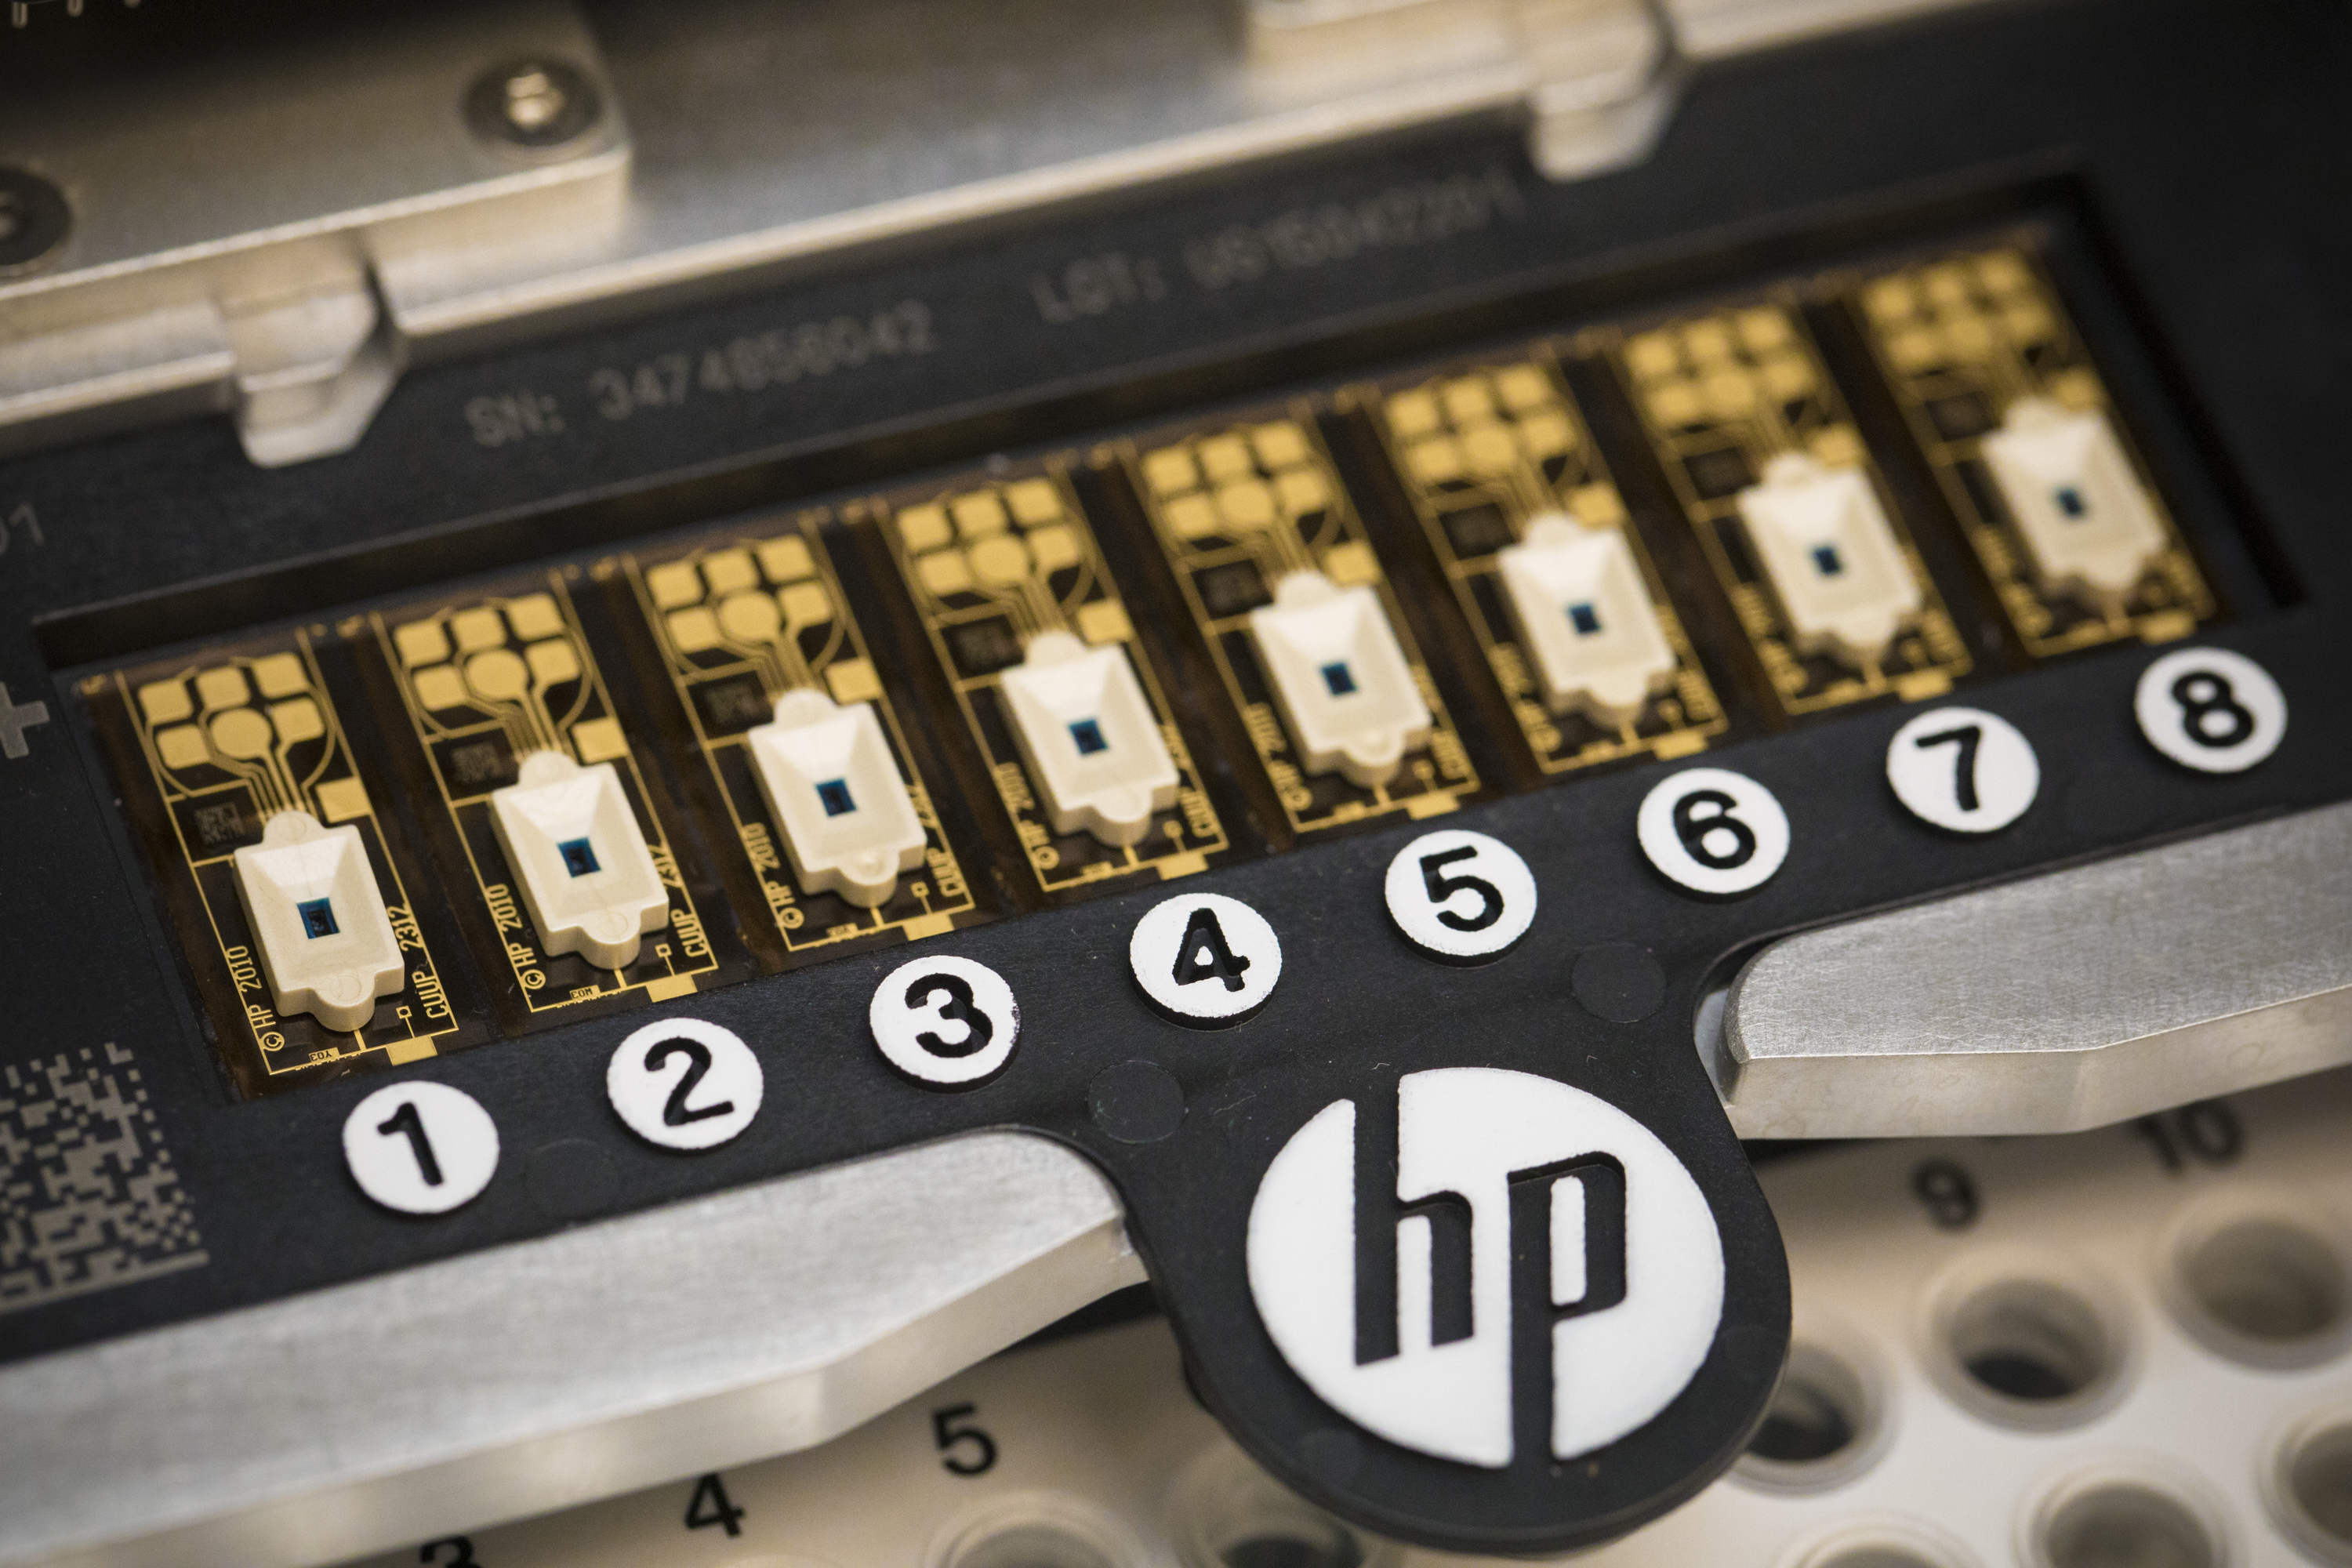 HP has repurposed its inkjet printers to construct structures from living cells.